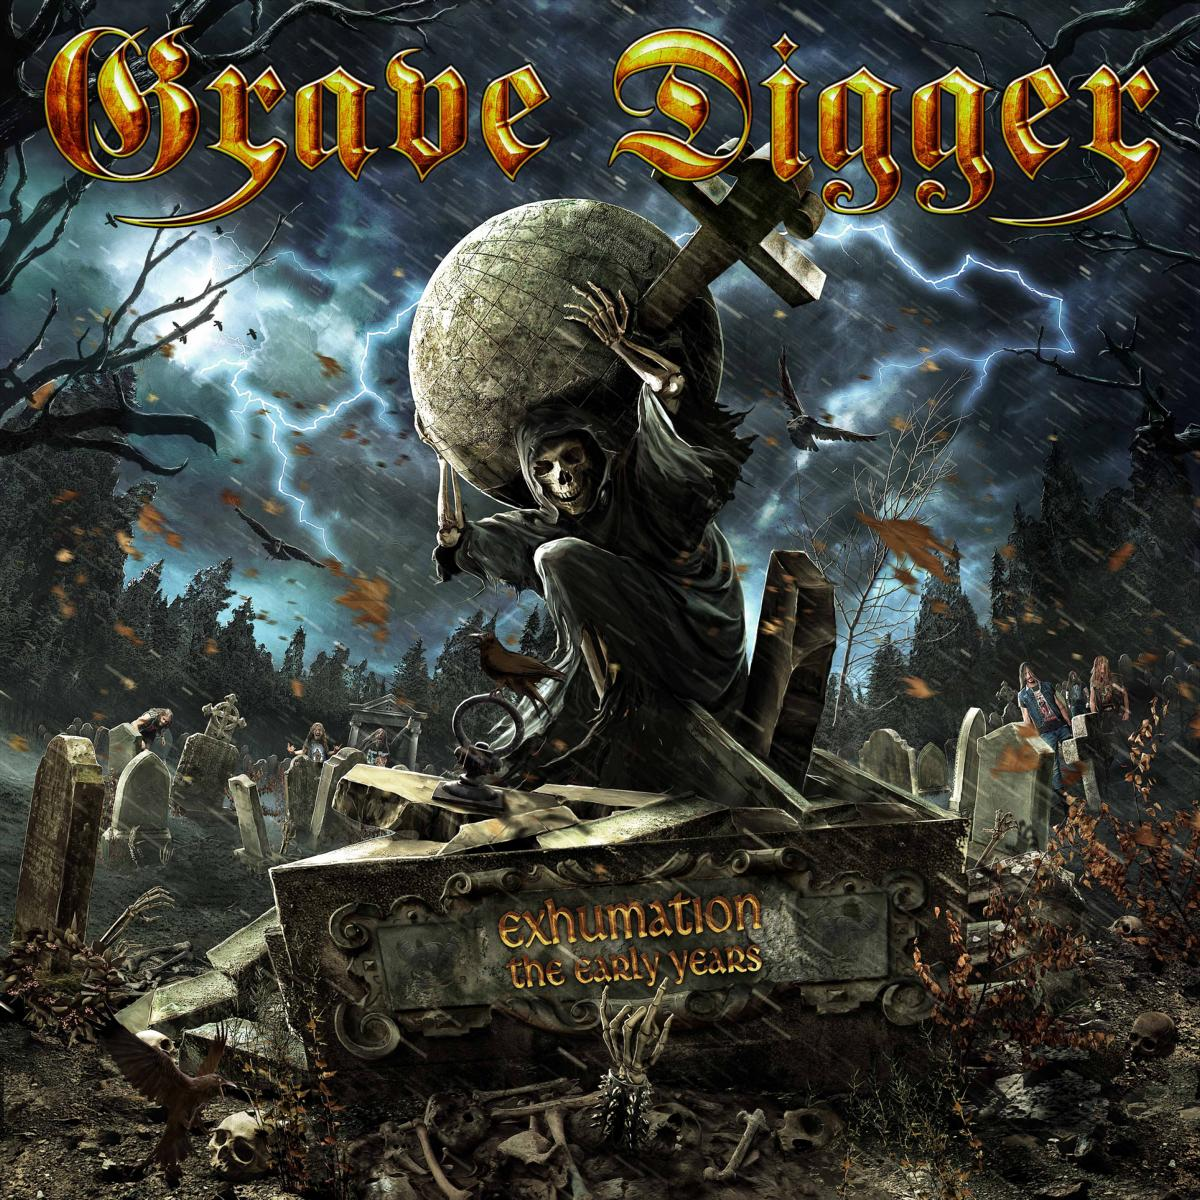 Grave Digger - Exhumation